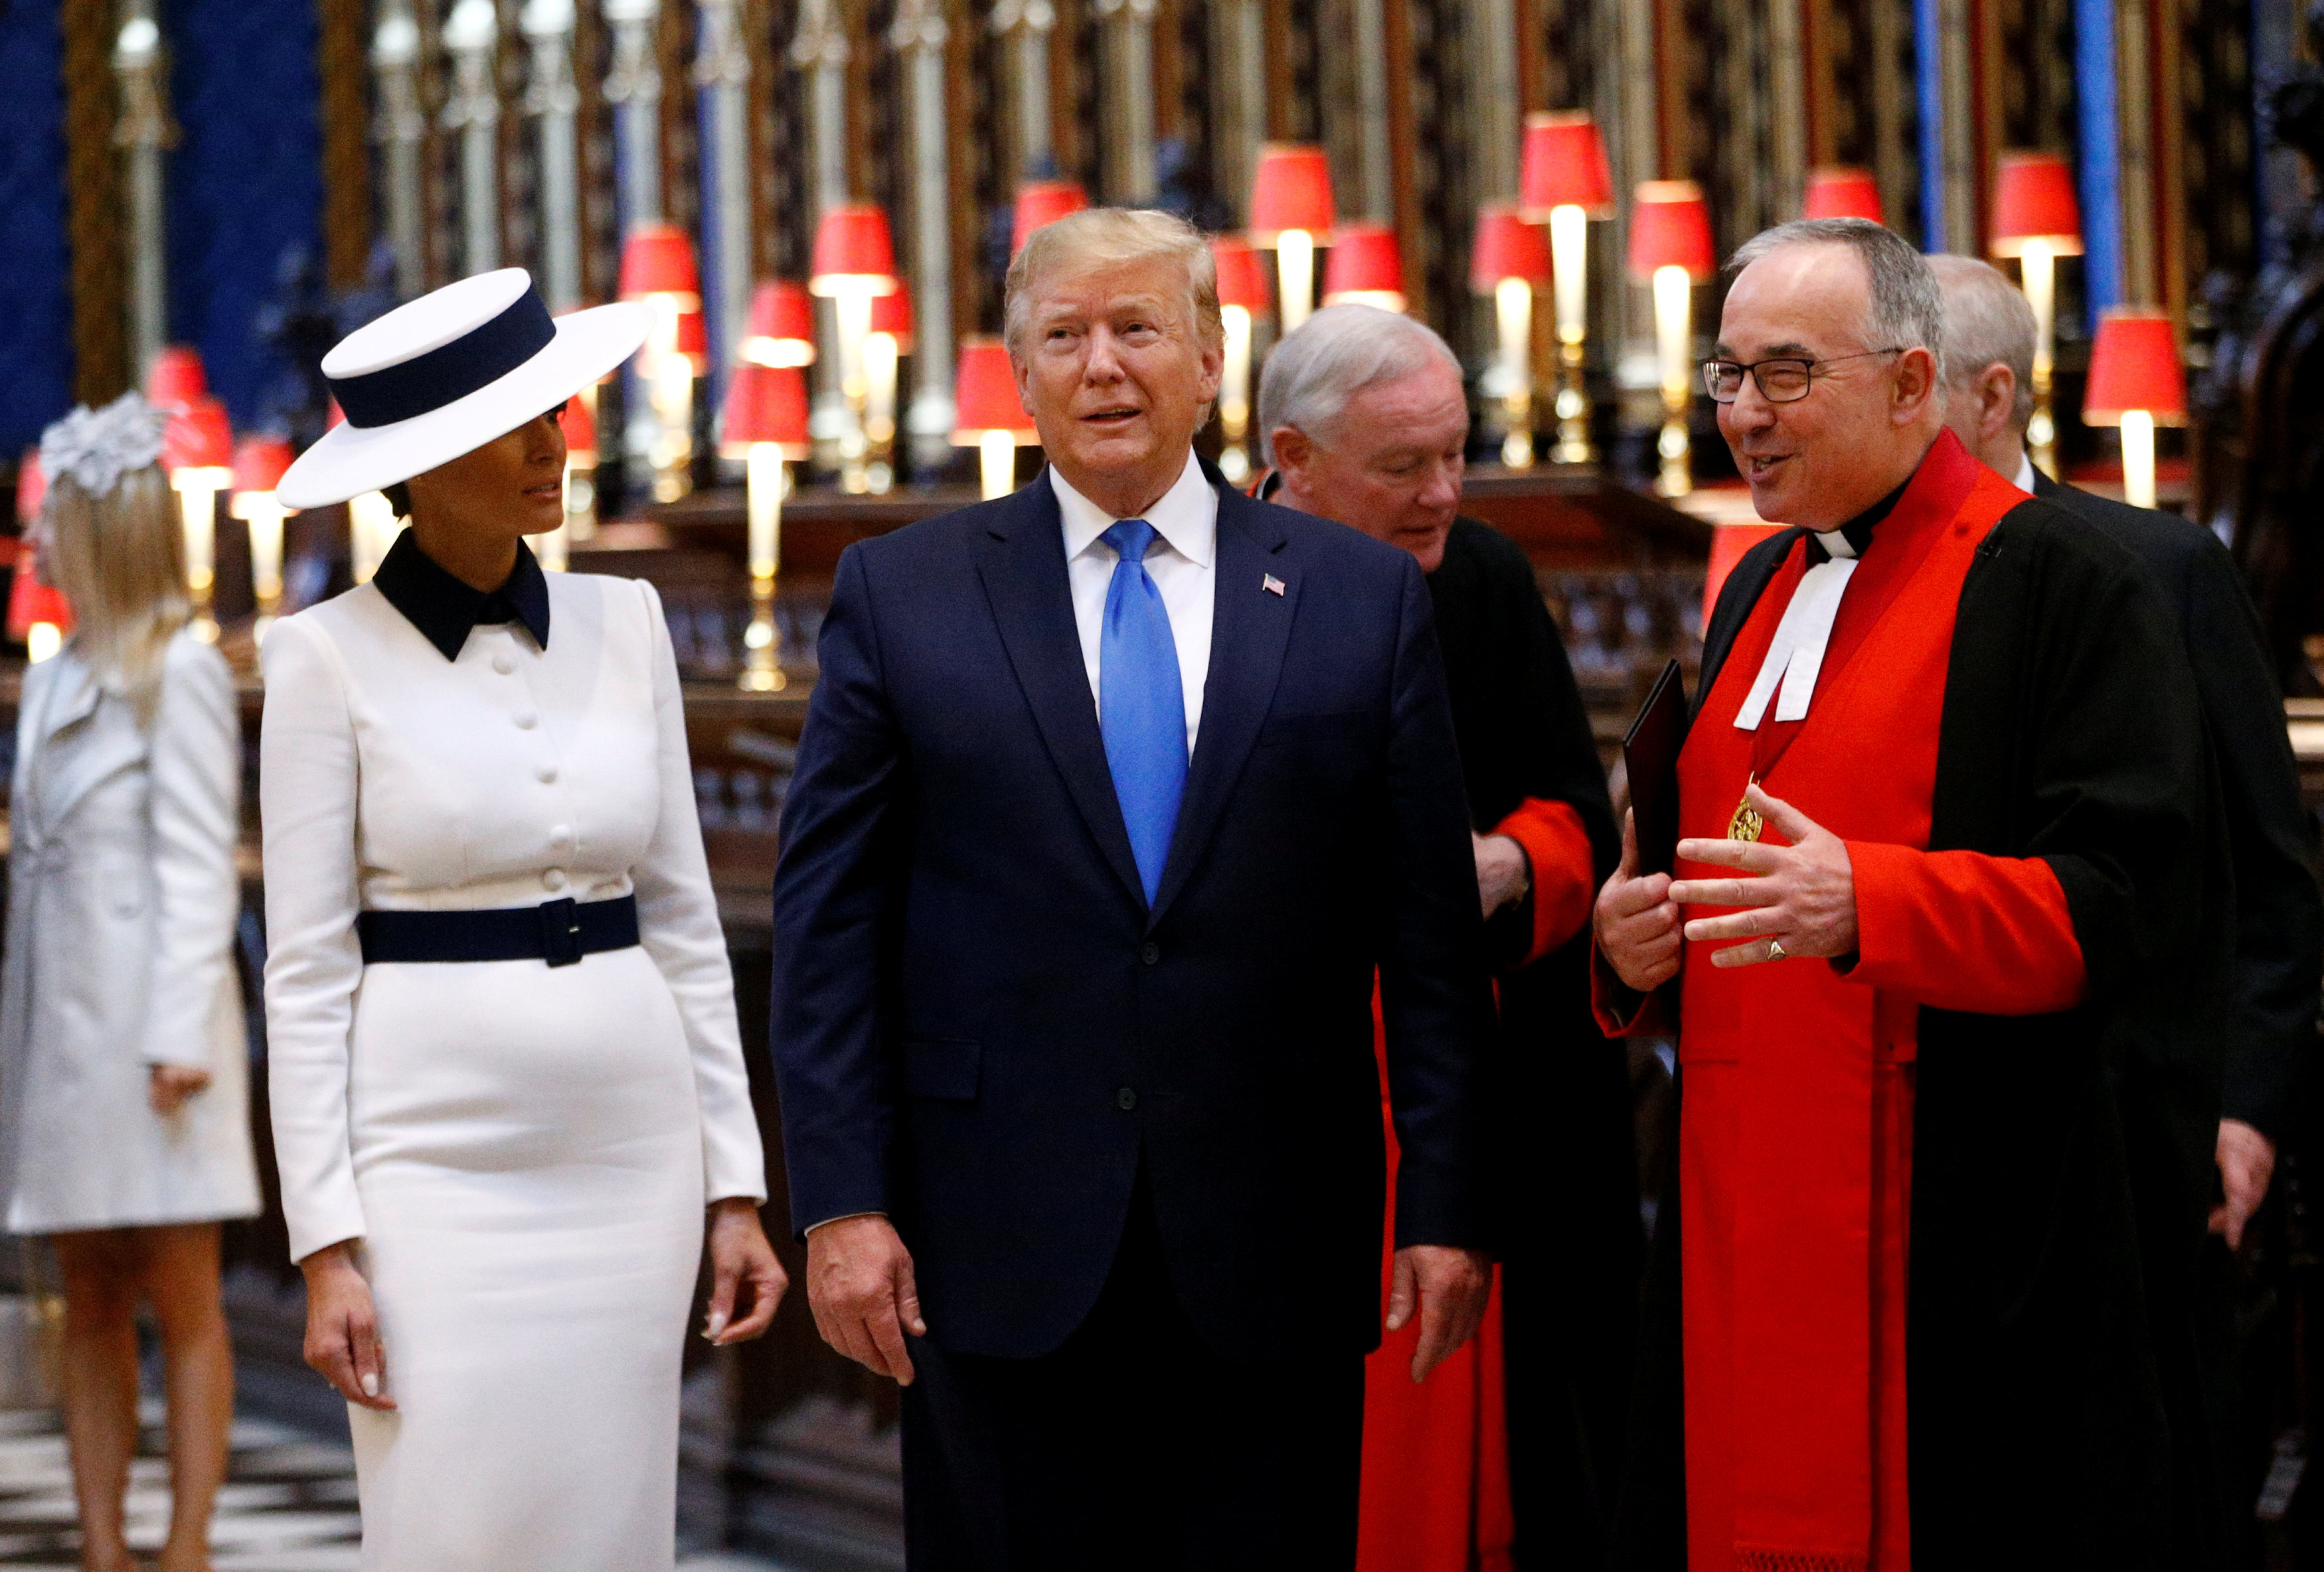 U.S. President Donald Trump and first lady Melania Trump tour Westminster Abbey US President Donald Trump state visit to London, UK - 03 Jun 2019